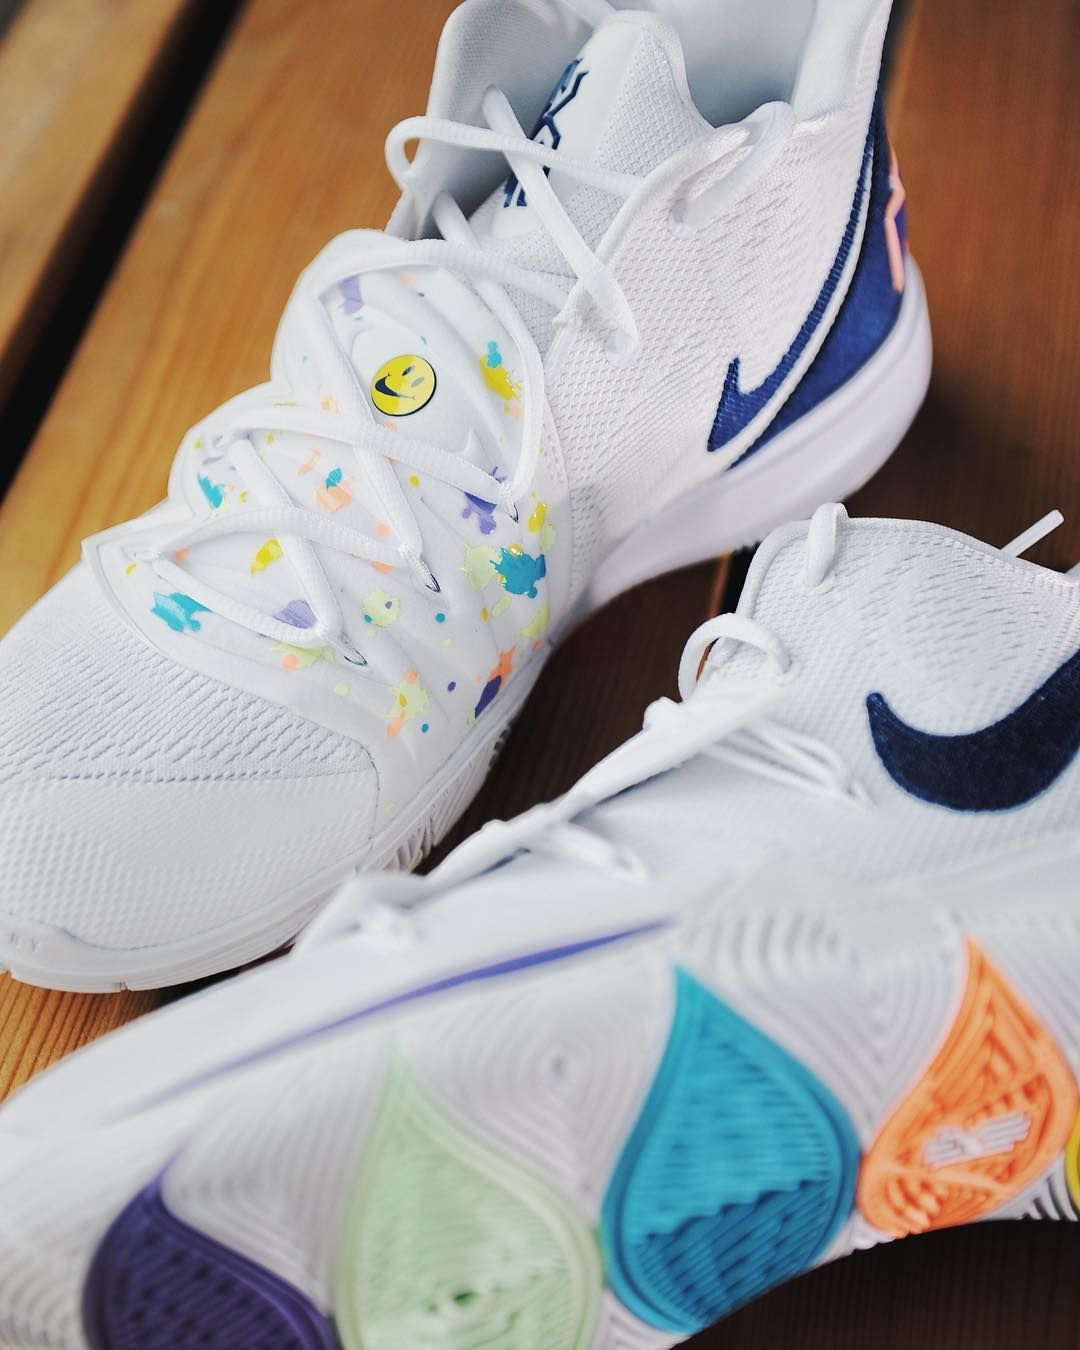 Nike Kyrie 5 Have A Nike Day Release Date Sole Collector Collector Date Day Kyrie In 2020 Womens Basketball Shoes Nike Basketball Shoes Girls Basketball Shoes